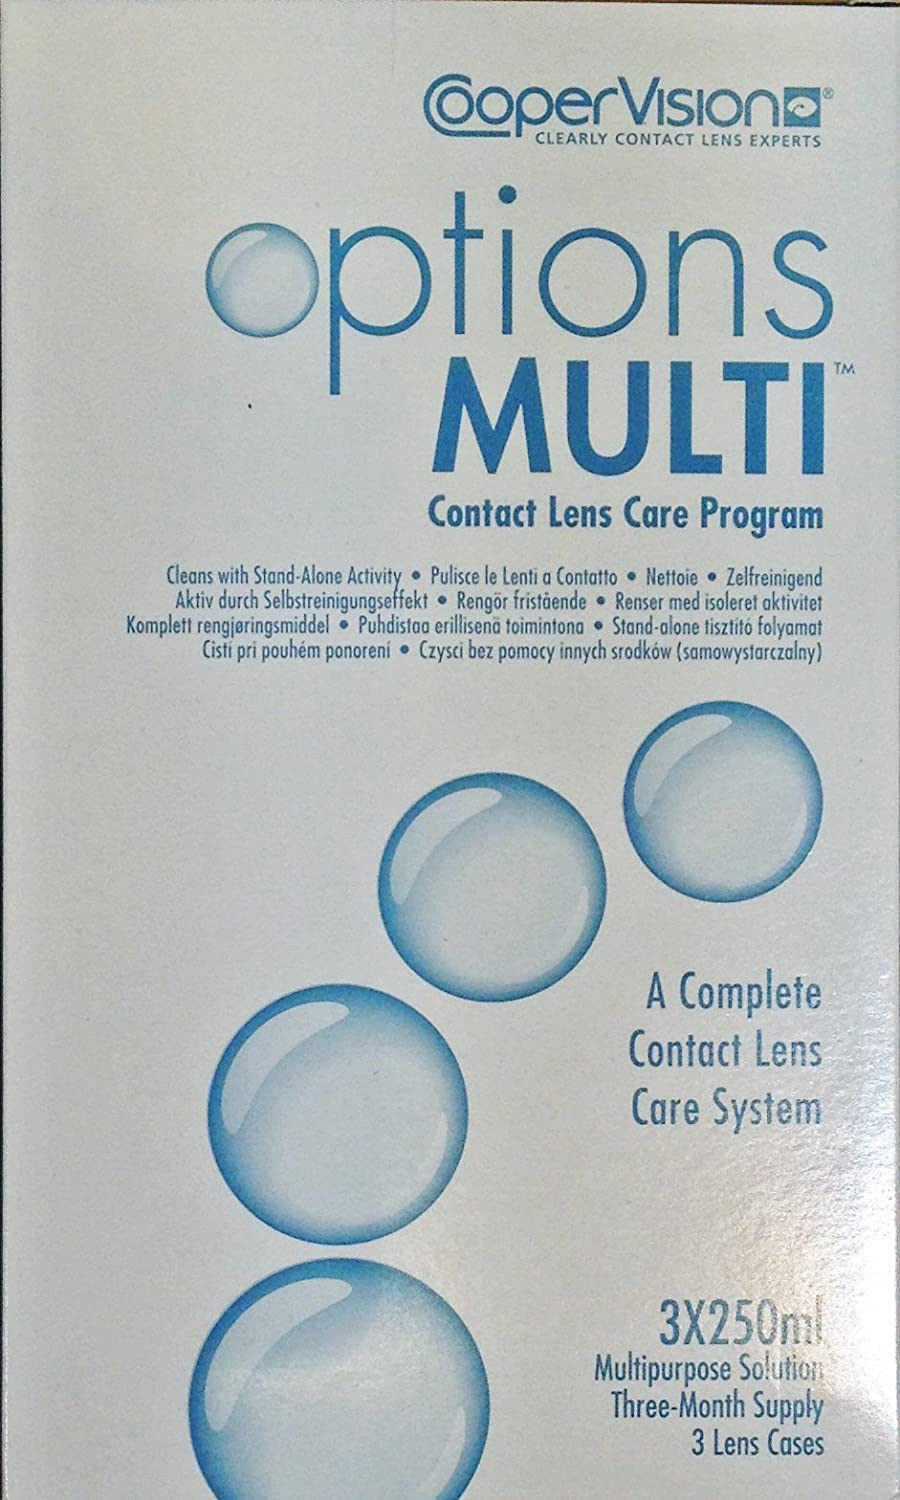 Options Multi Contact Lens Care Program 3x250ml (3 Months Supply) CooperVison